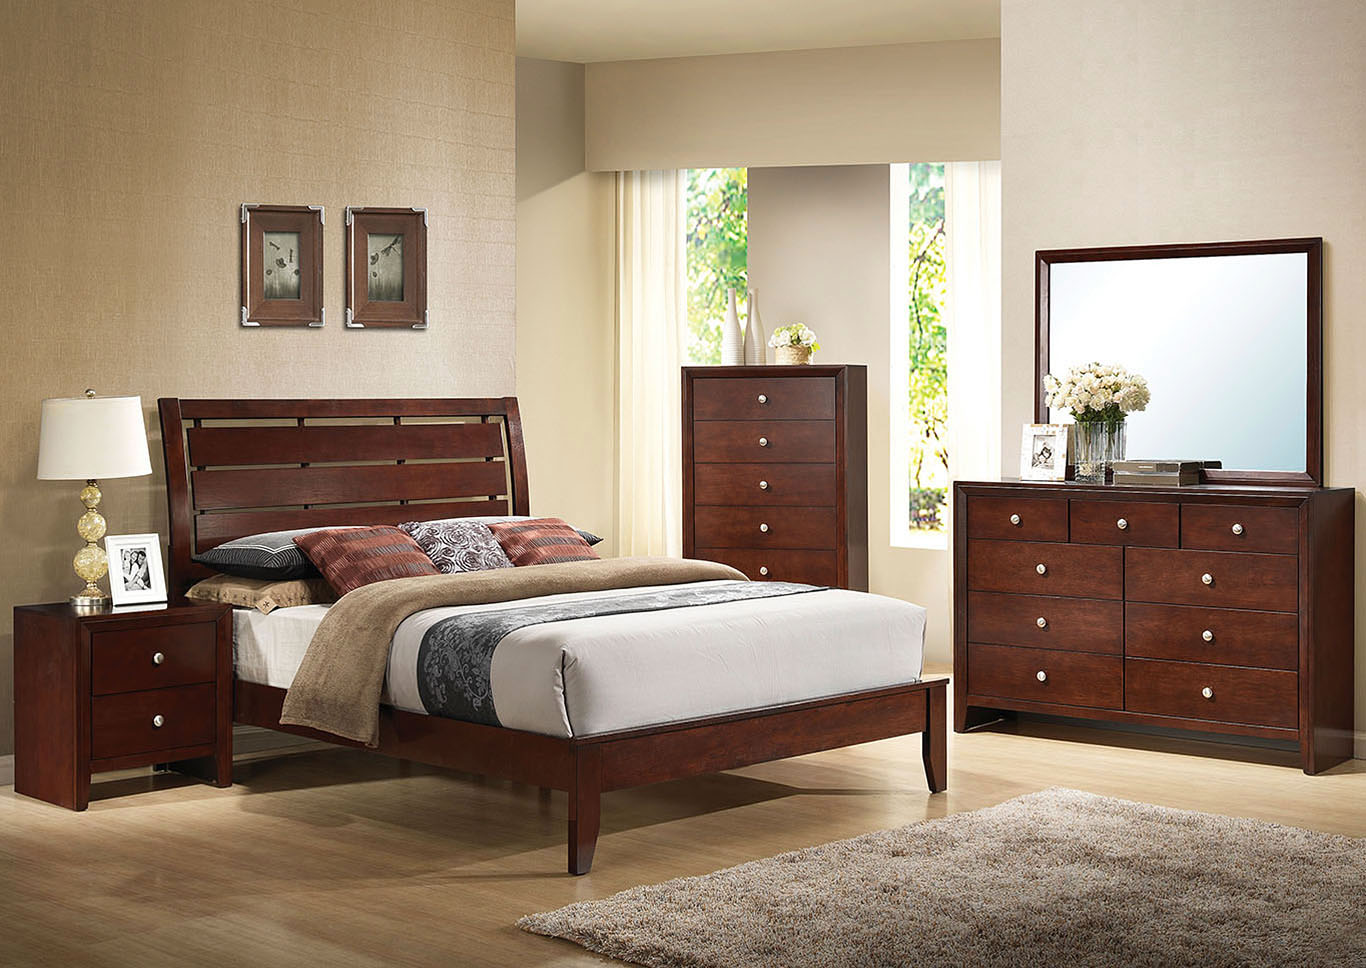 Ilana Brown Eastern King Platform Bed w/Dresser and Mirror,Acme